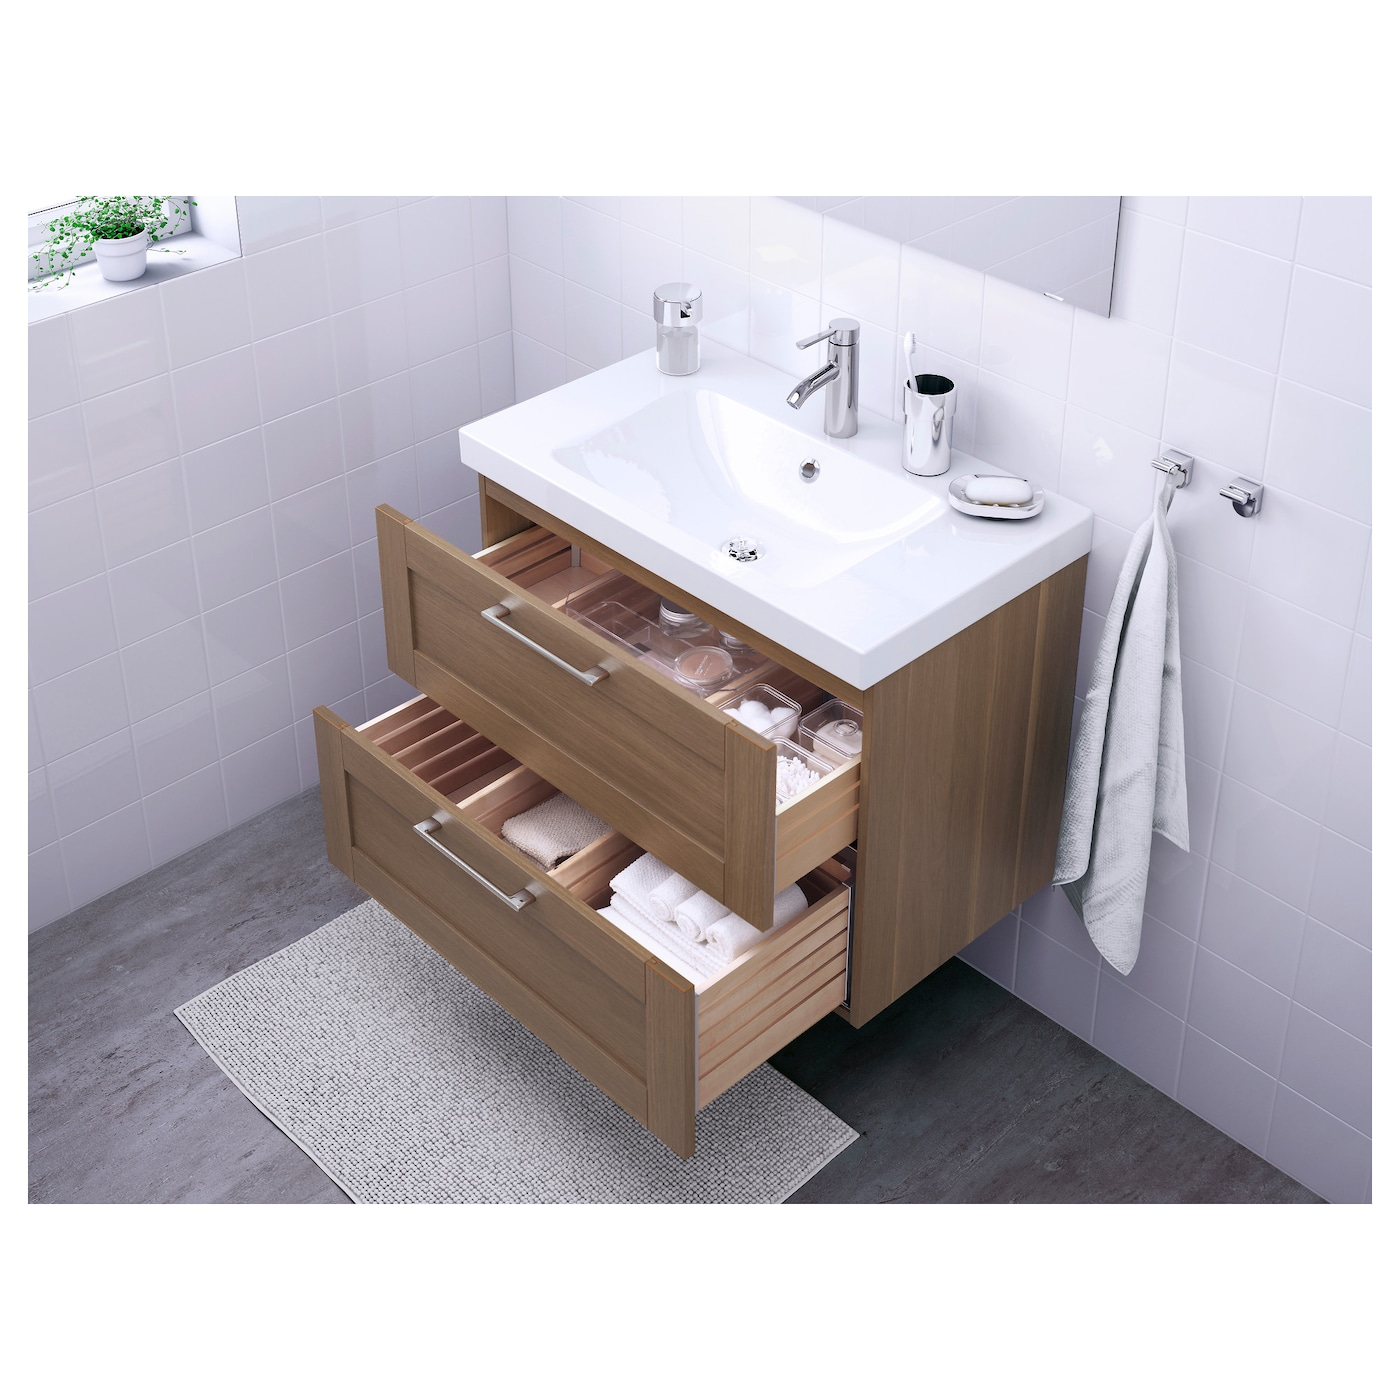 odensvik godmorgon wash stand with 2 drawers walnut effect 80x49x64 cm ikea. Black Bedroom Furniture Sets. Home Design Ideas